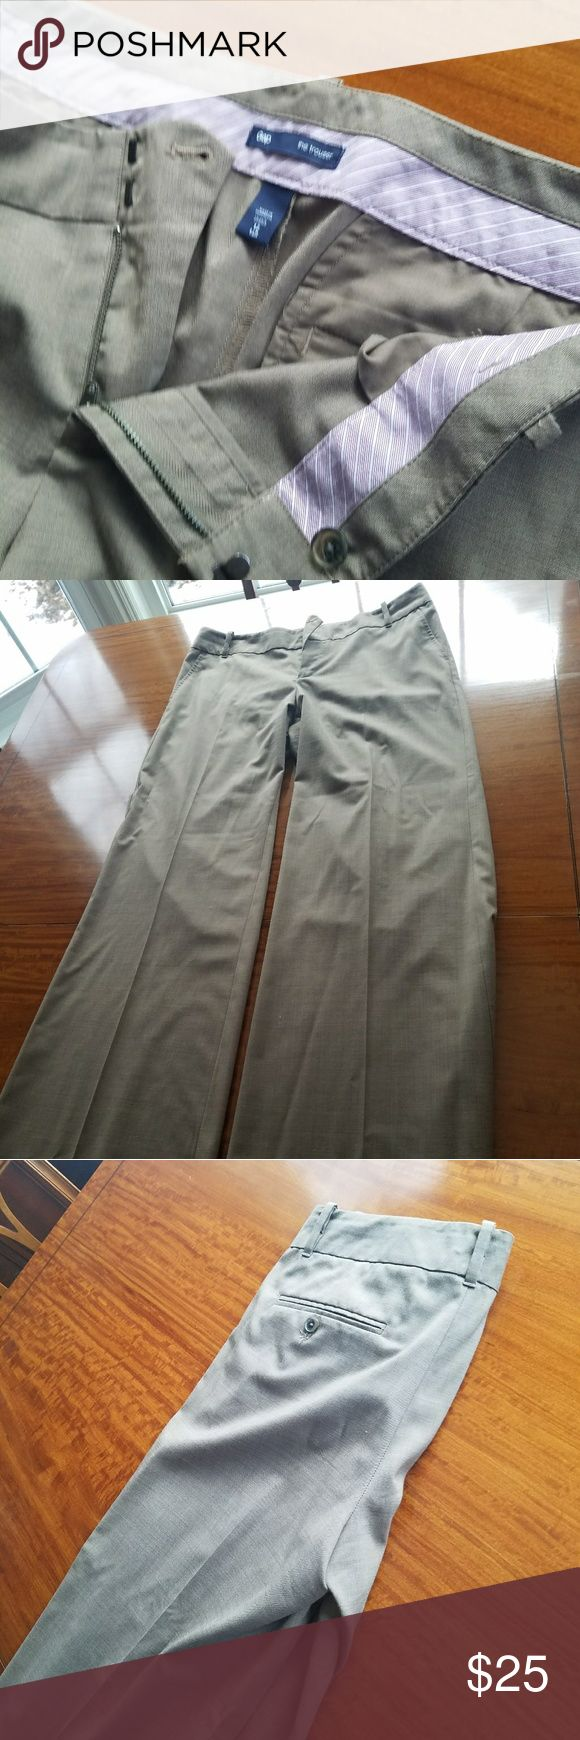 Gap TALL womens trousers Like new light TALL Gap trousers GAP Pants Trousers